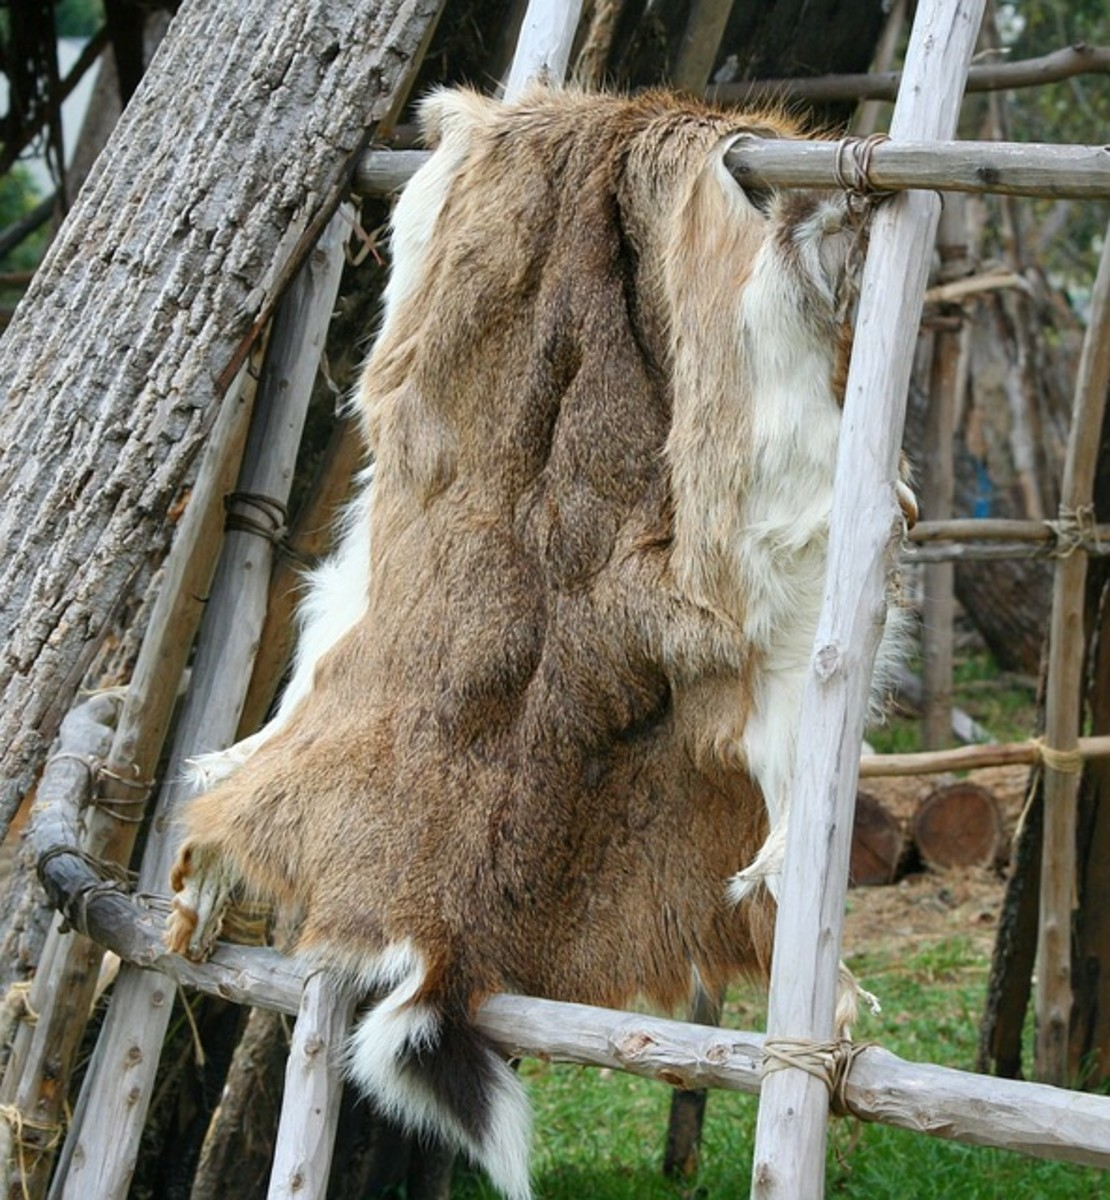 Deer pelt before fur is removed in tanning process.